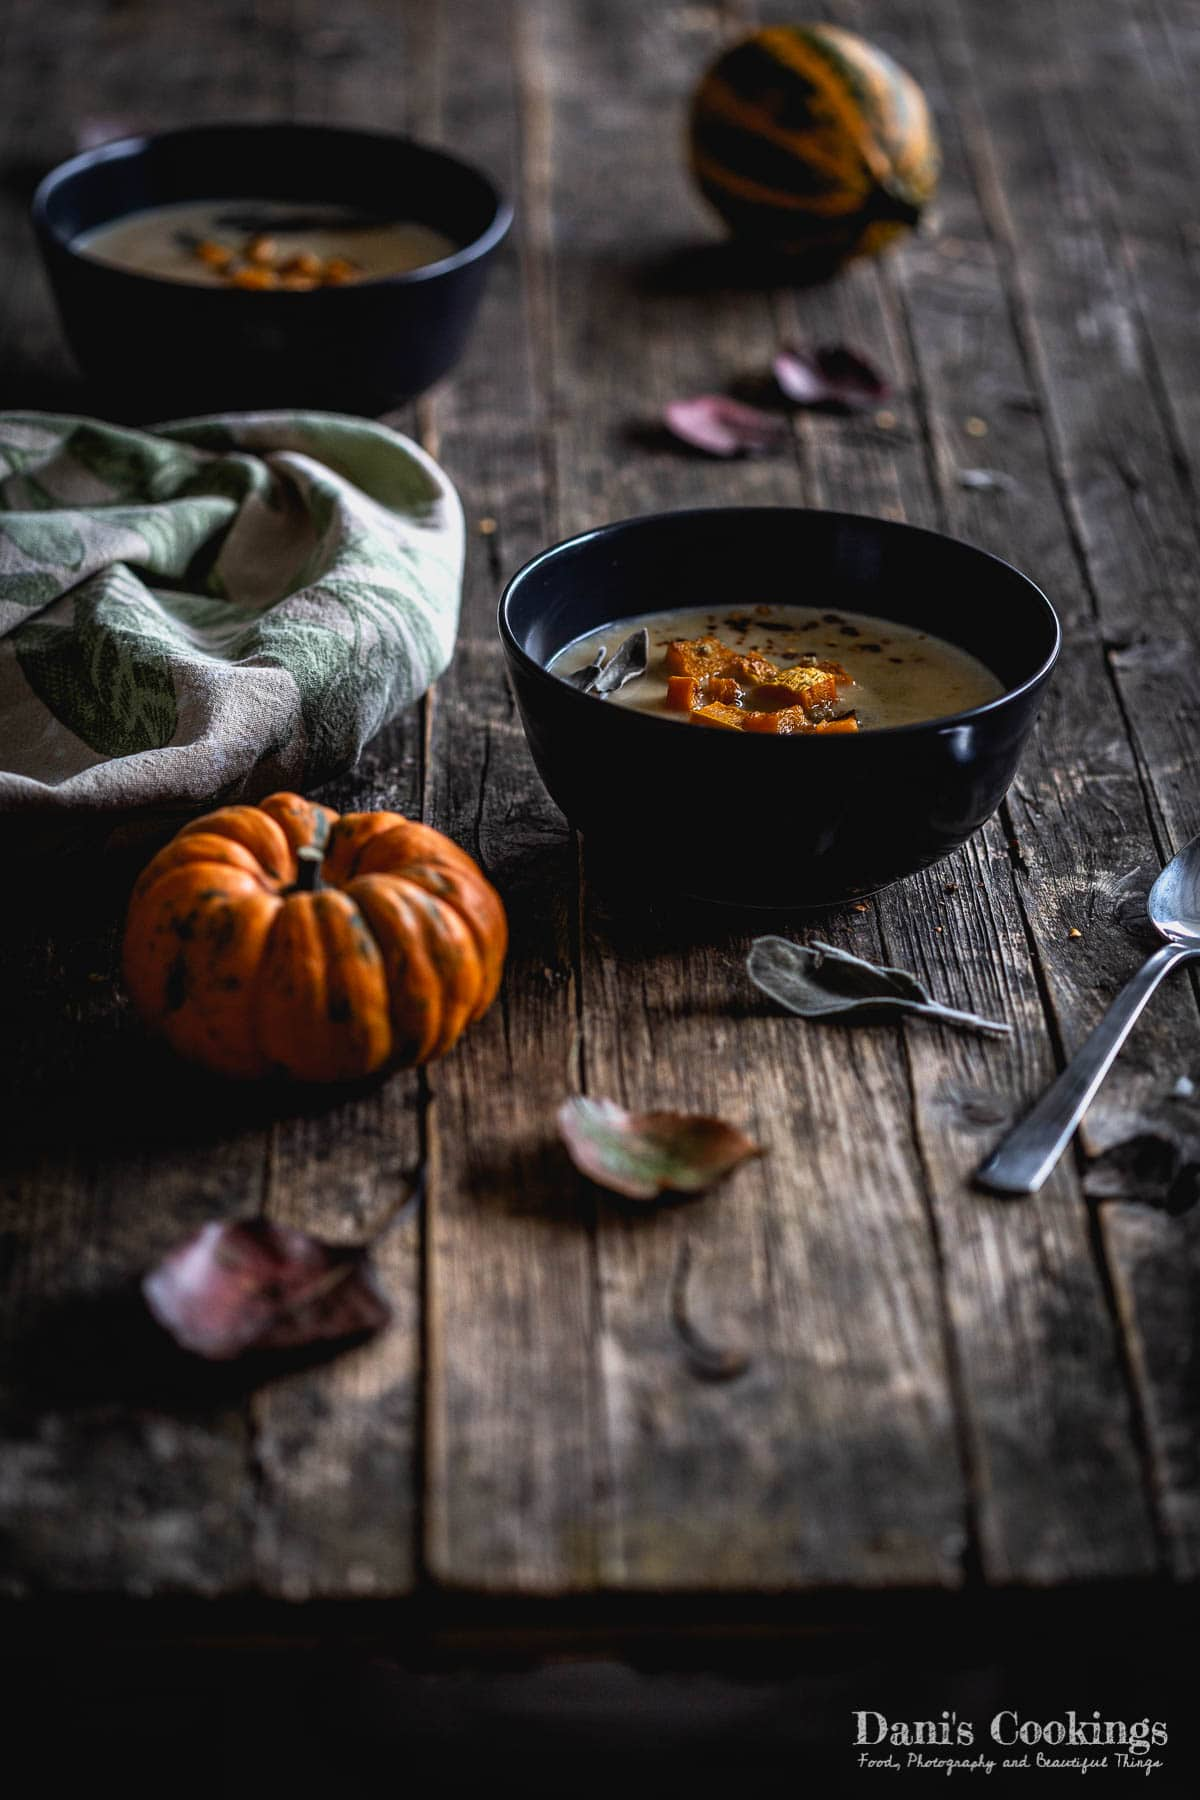 two bowls of pumpkin soup on a table with pumpkin aside